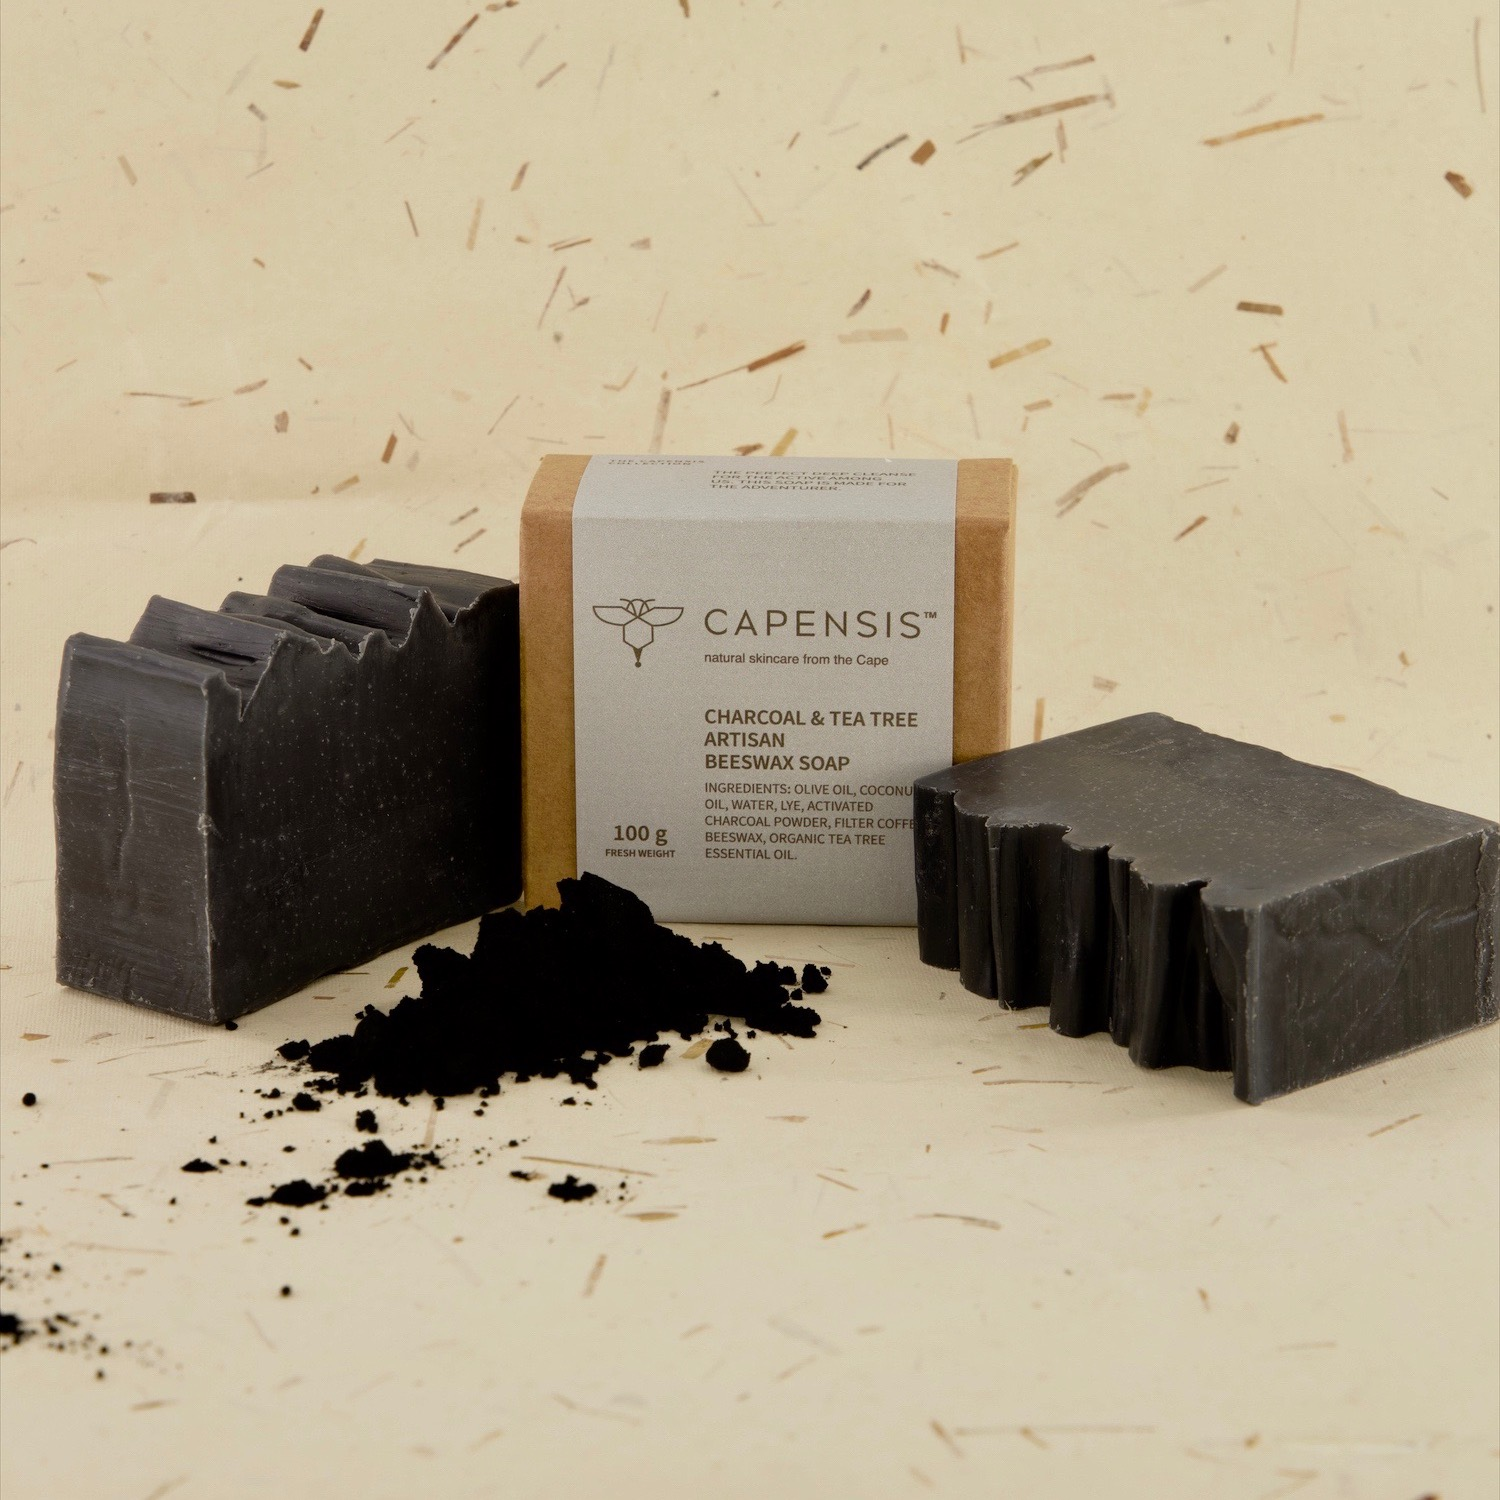 Tea Tree has impressive antiseptic, anti-fungal and antibacterial properties, making it widely used in the treatment of many skin conditions. Activated charcoal is great for removing excess oils and toxins hidden in the pores of your skin. It binds to dirt and helps pull it out of your pores. This soap is good for balancing oily skin, detoxifying skin and for the treatment of acne.